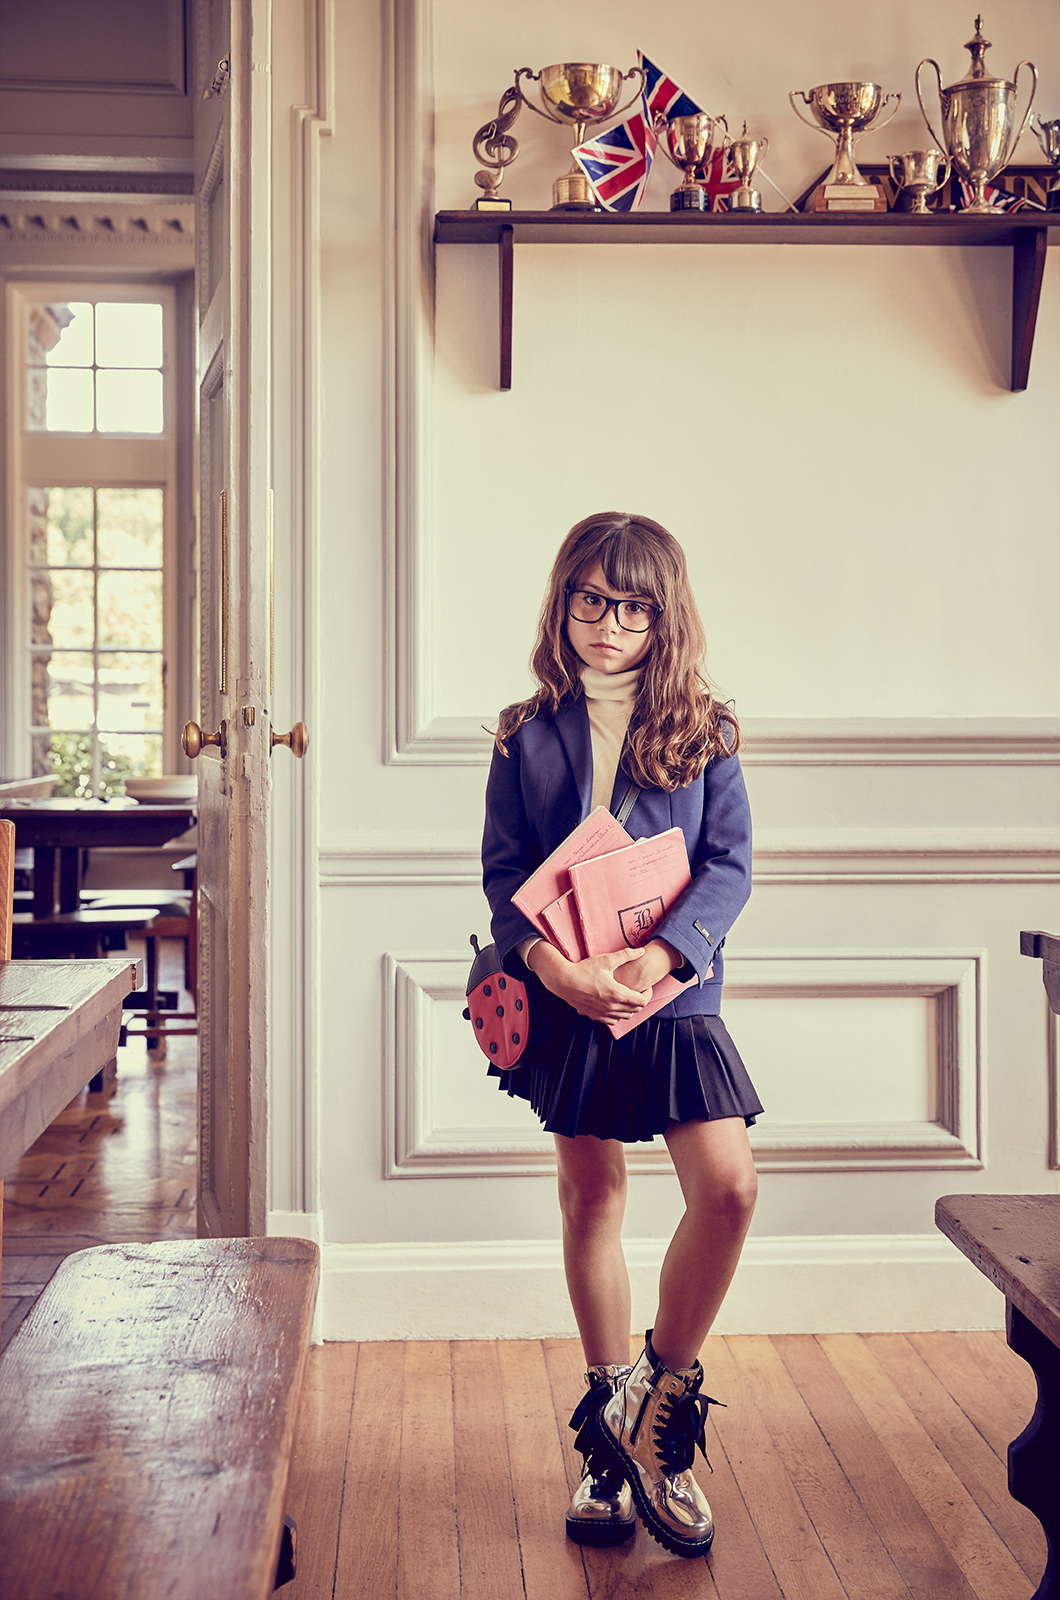 Kids magazine school fashion editorial 7